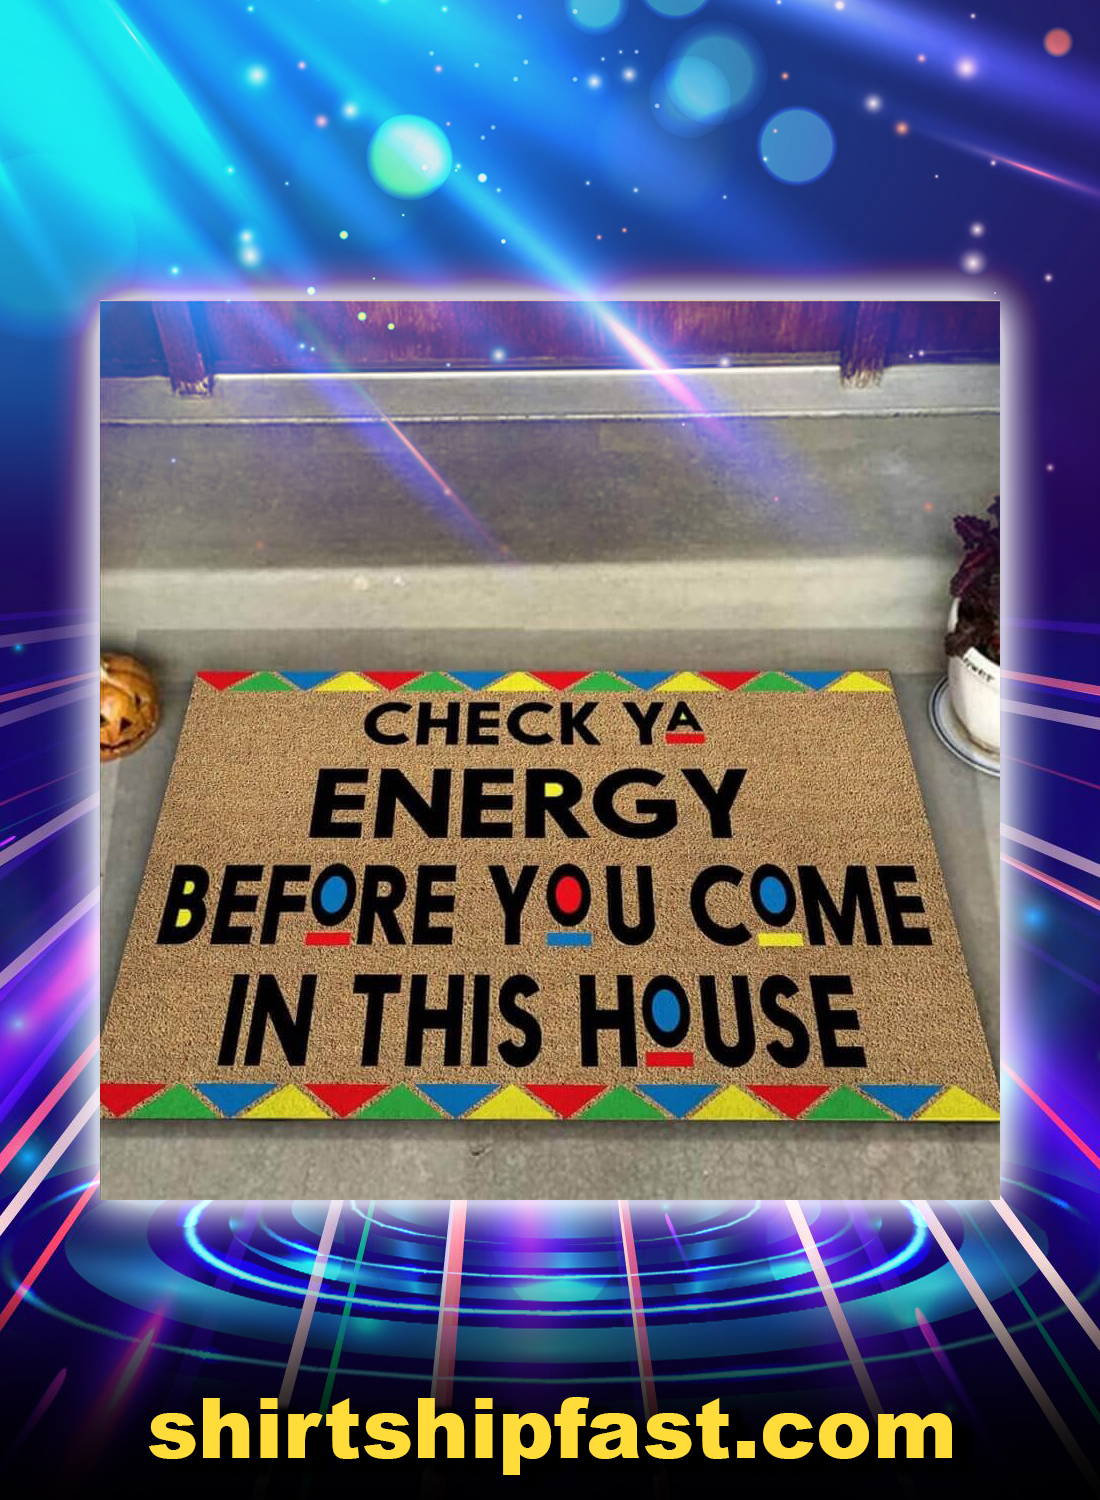 Check ya energy african american pattern doormat - Picture 1